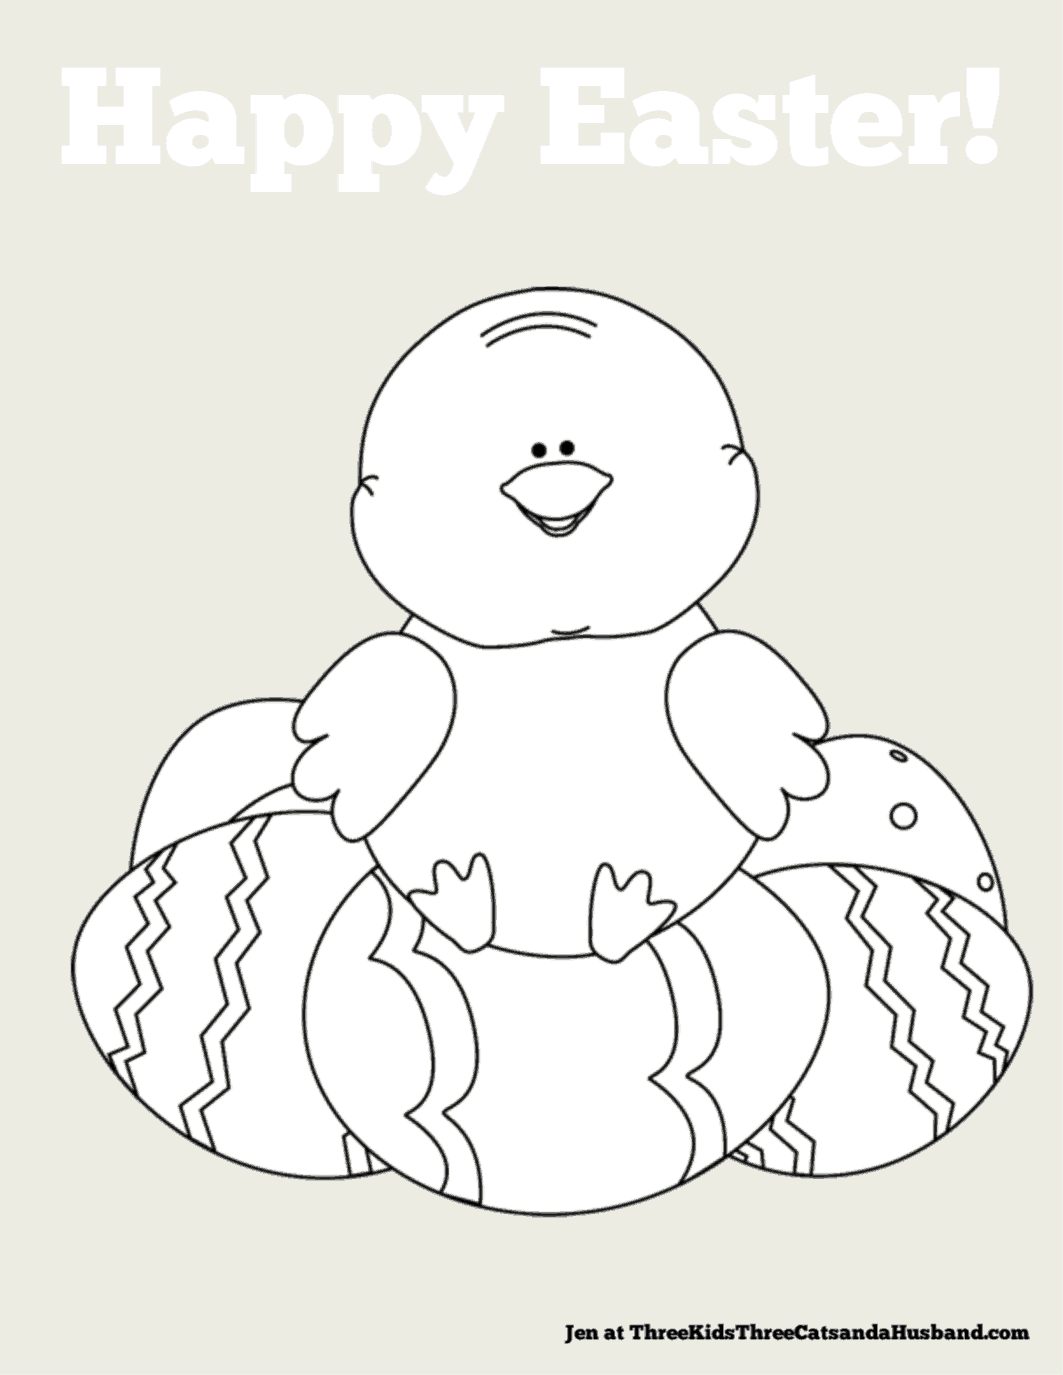 - Free Printable Easter Coloring Pages For Kids (Cute And Fun!)